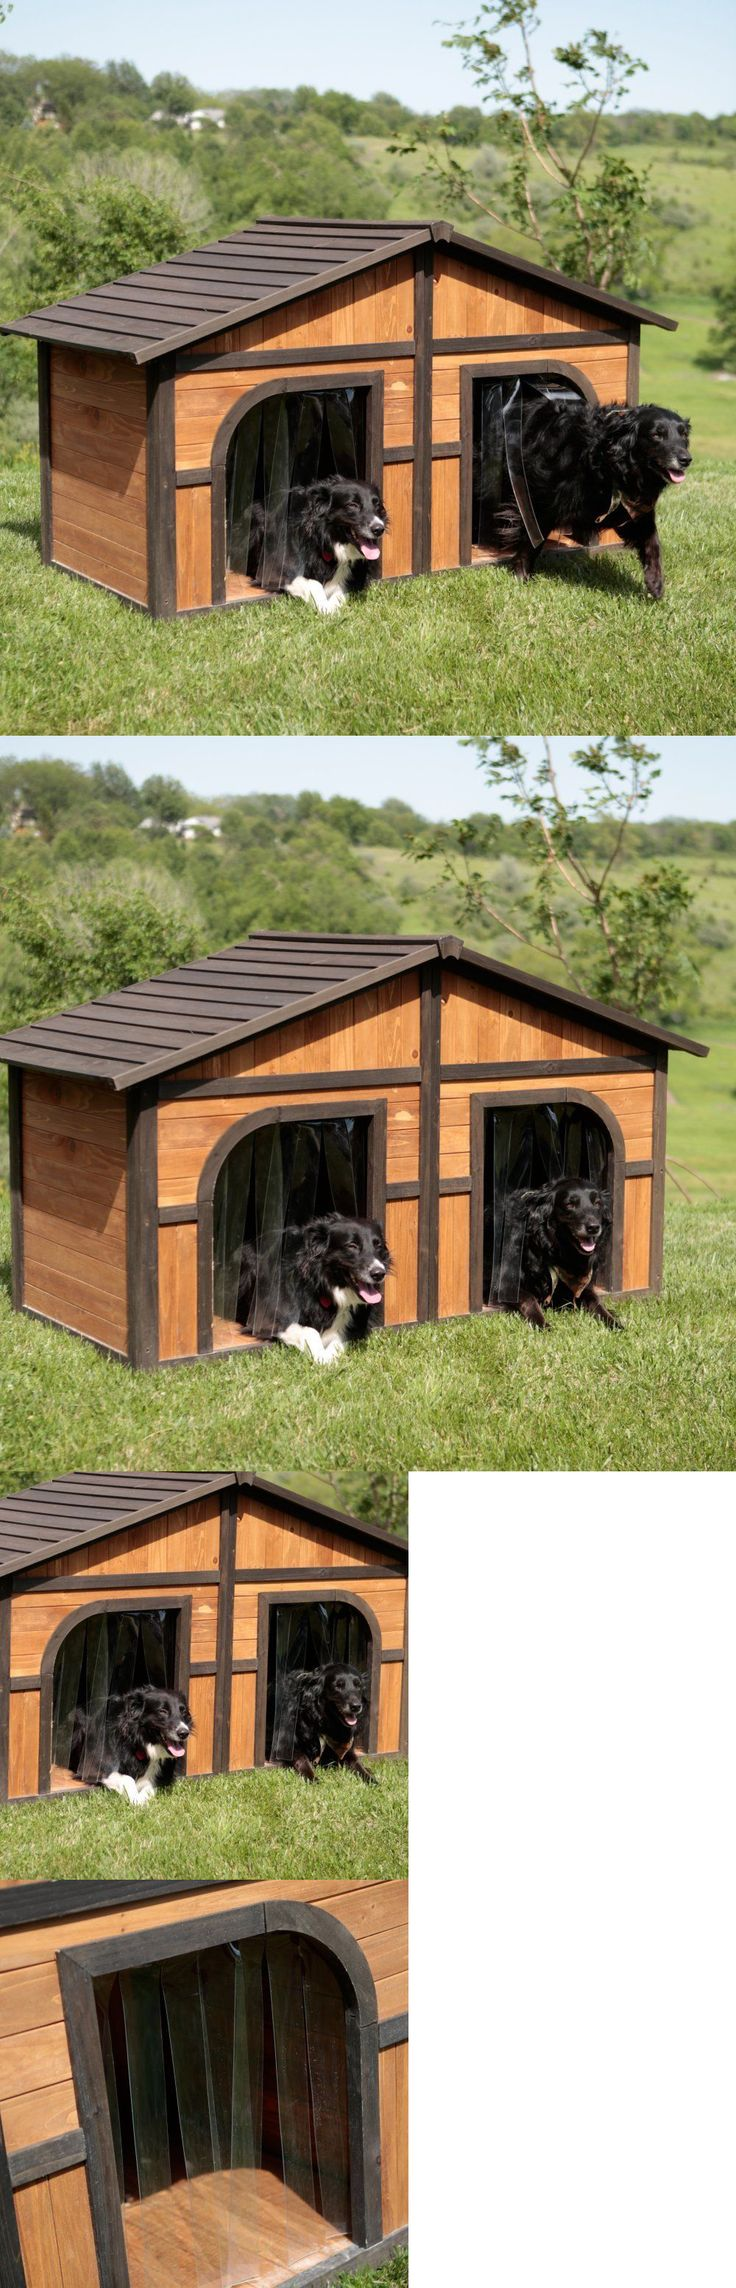 Dog Houses 108884: Xl Dog House Extra Large Kennel For 2 Dogs Wood Insulated Duplex Pet Shelter -> BUY IT NOW ONLY: $415.89 on eBay!